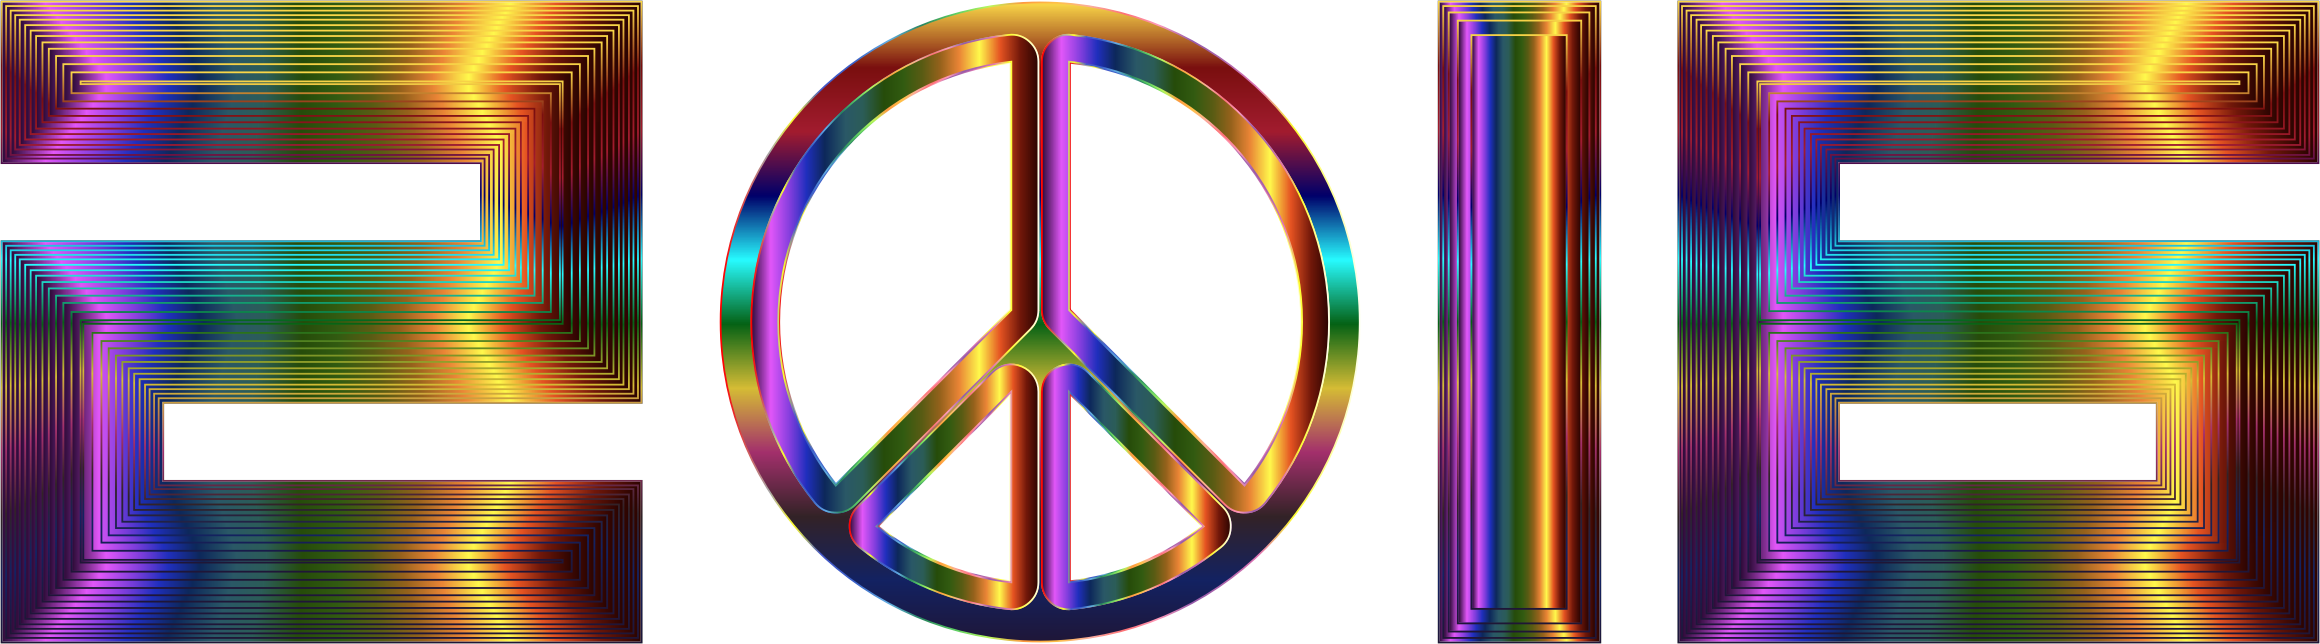 Chromatic 2016 Peace by GDJ